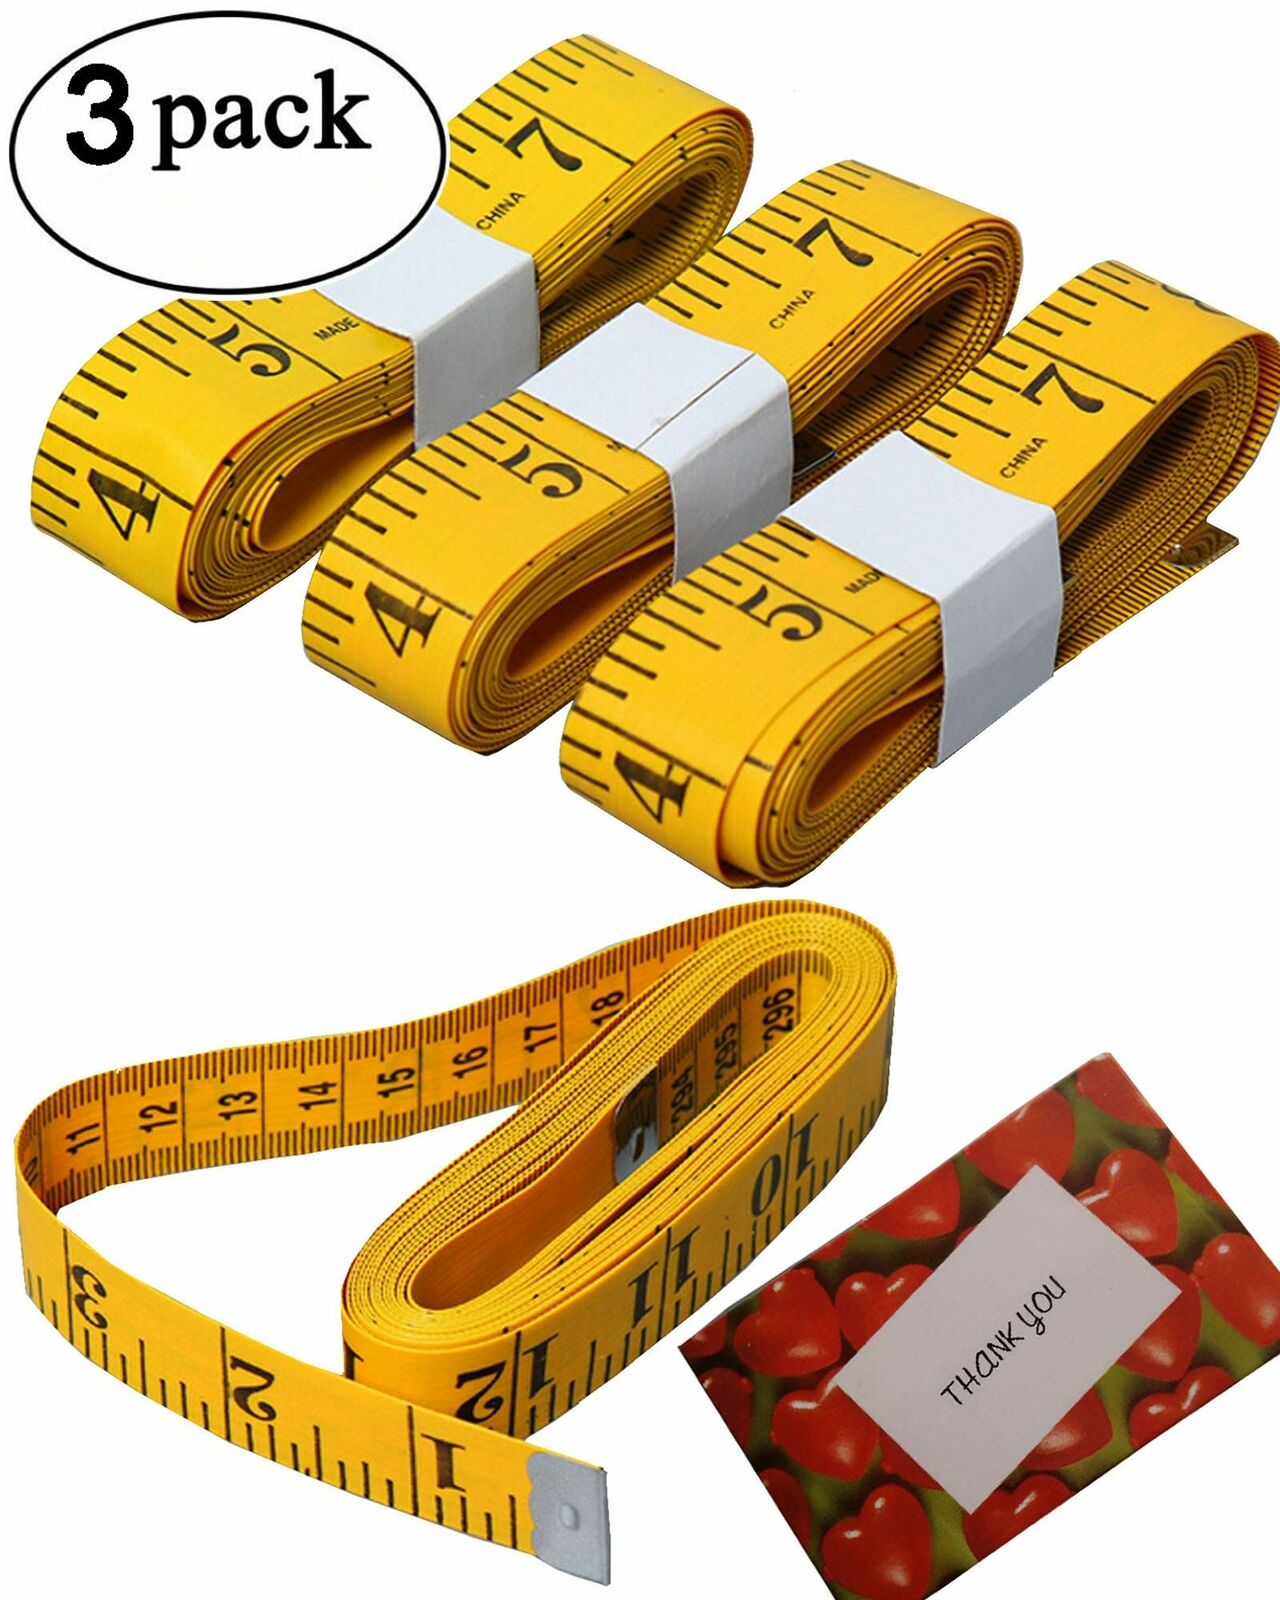 3 Pack 120-Inch Extra Long Soft Tape Measure for Sewing Tailor Cloth Ruler